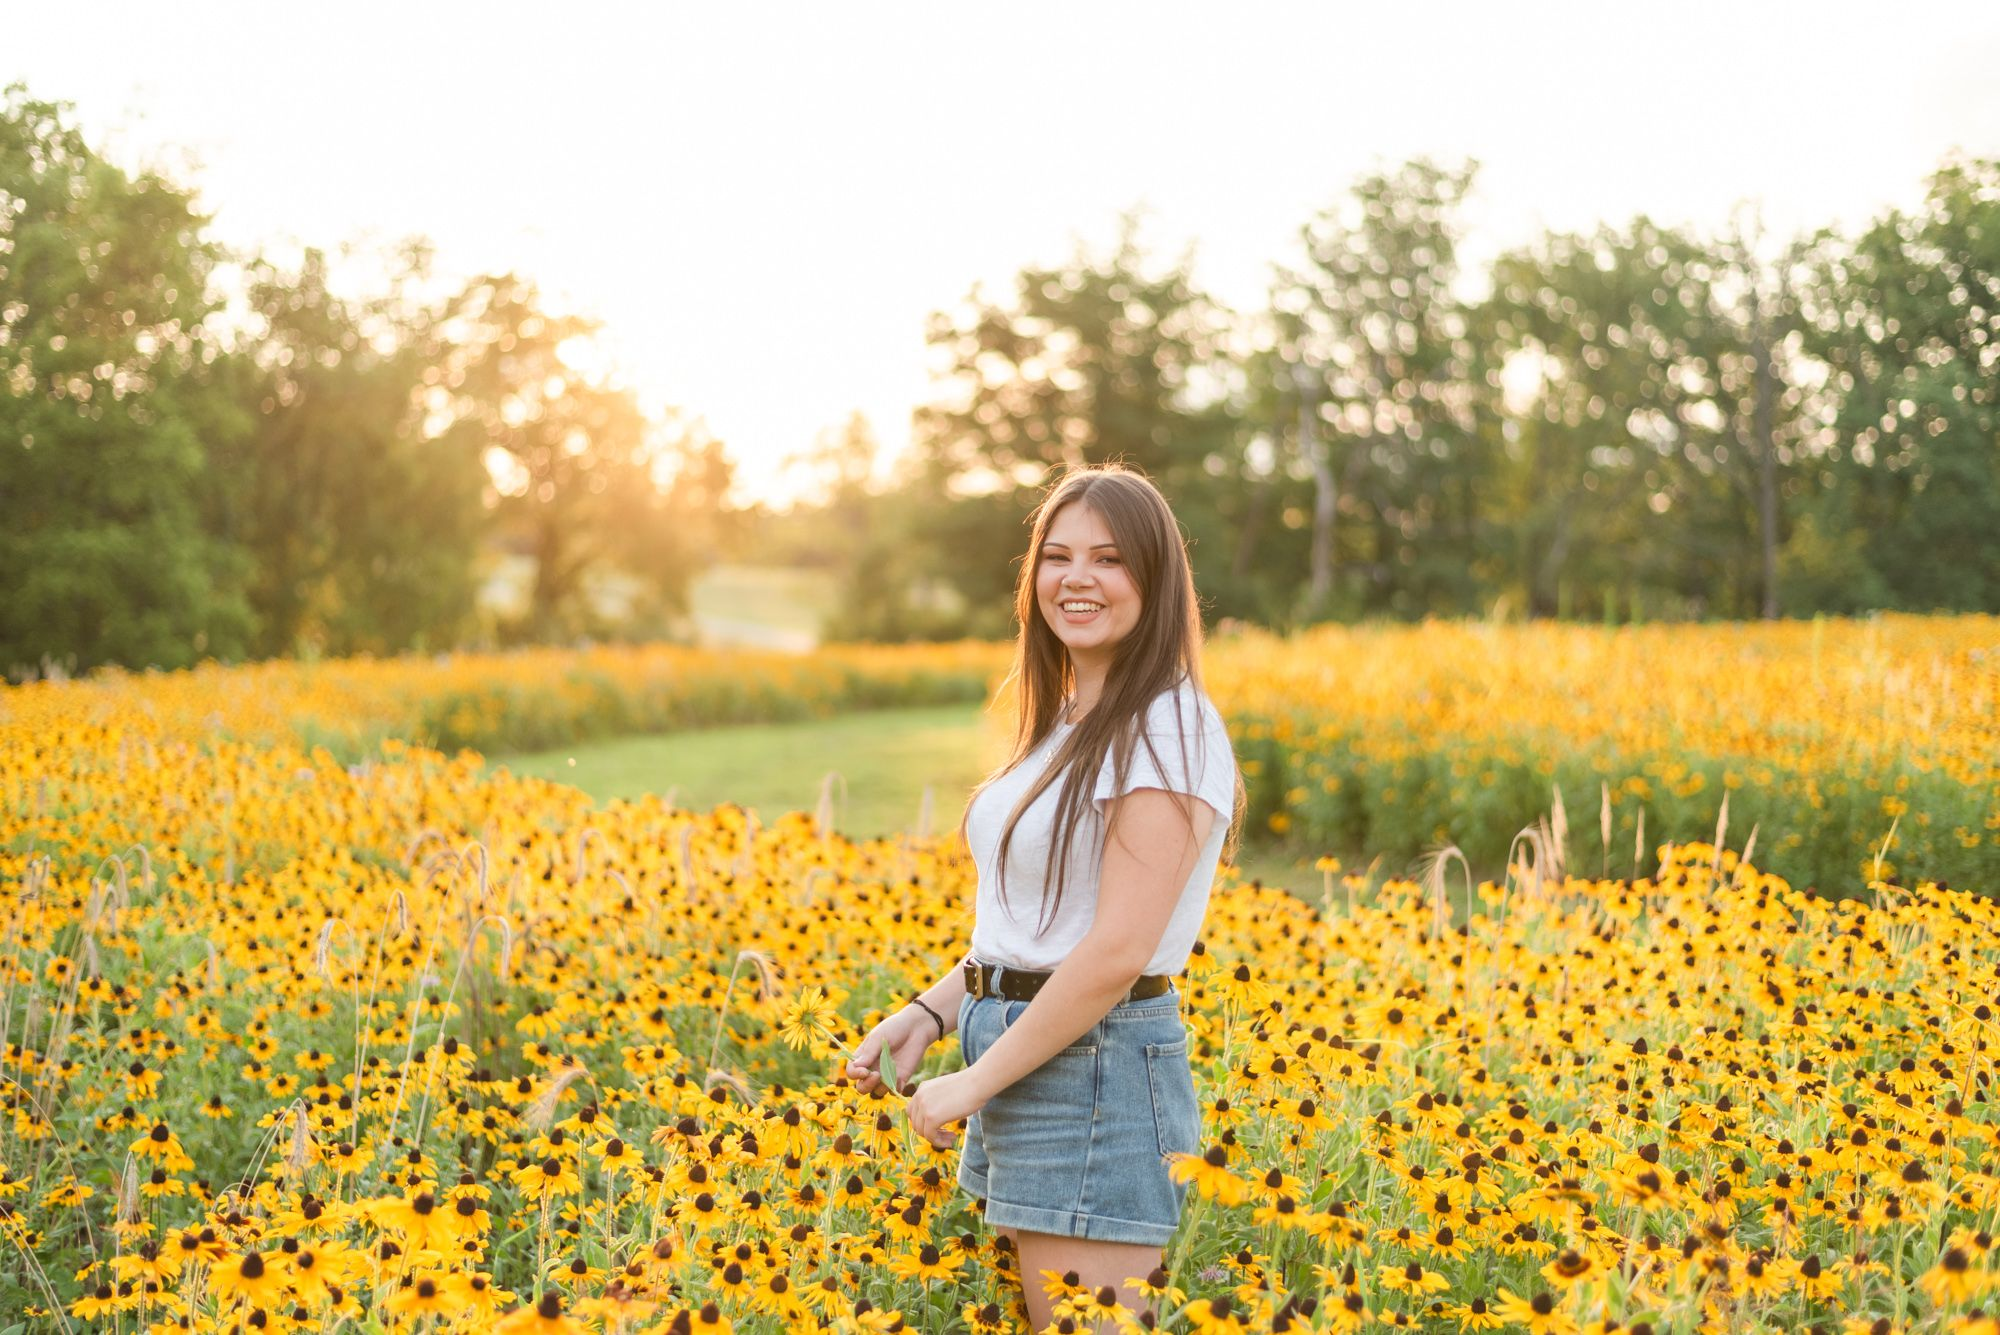 Girl standing in sunflower field in golden sunlight at Hartwood Acres in Pittsburgh Pennsylvania